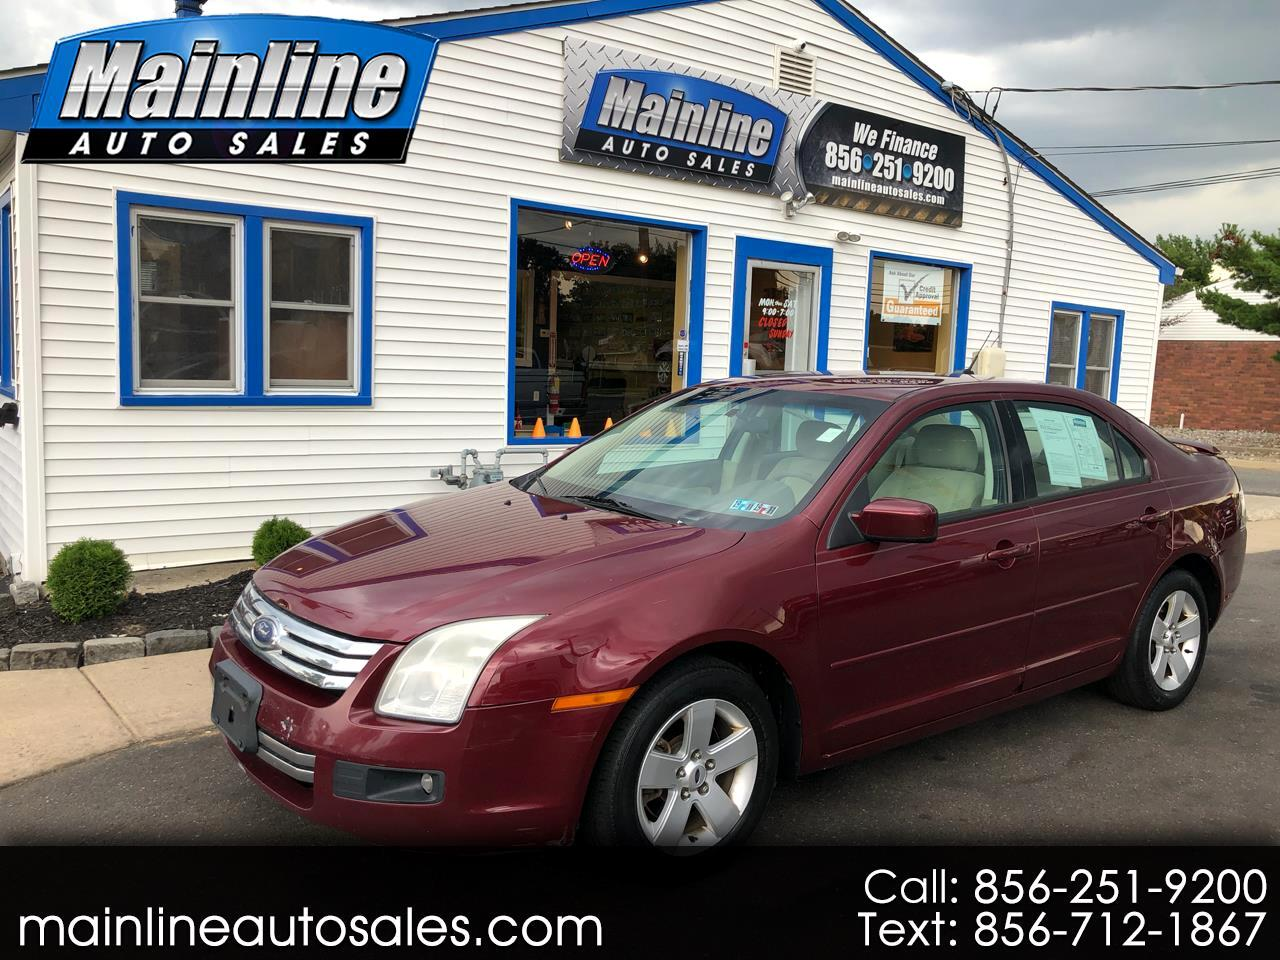 2007 Ford Fusion 4dr Sdn I4 SE FWD